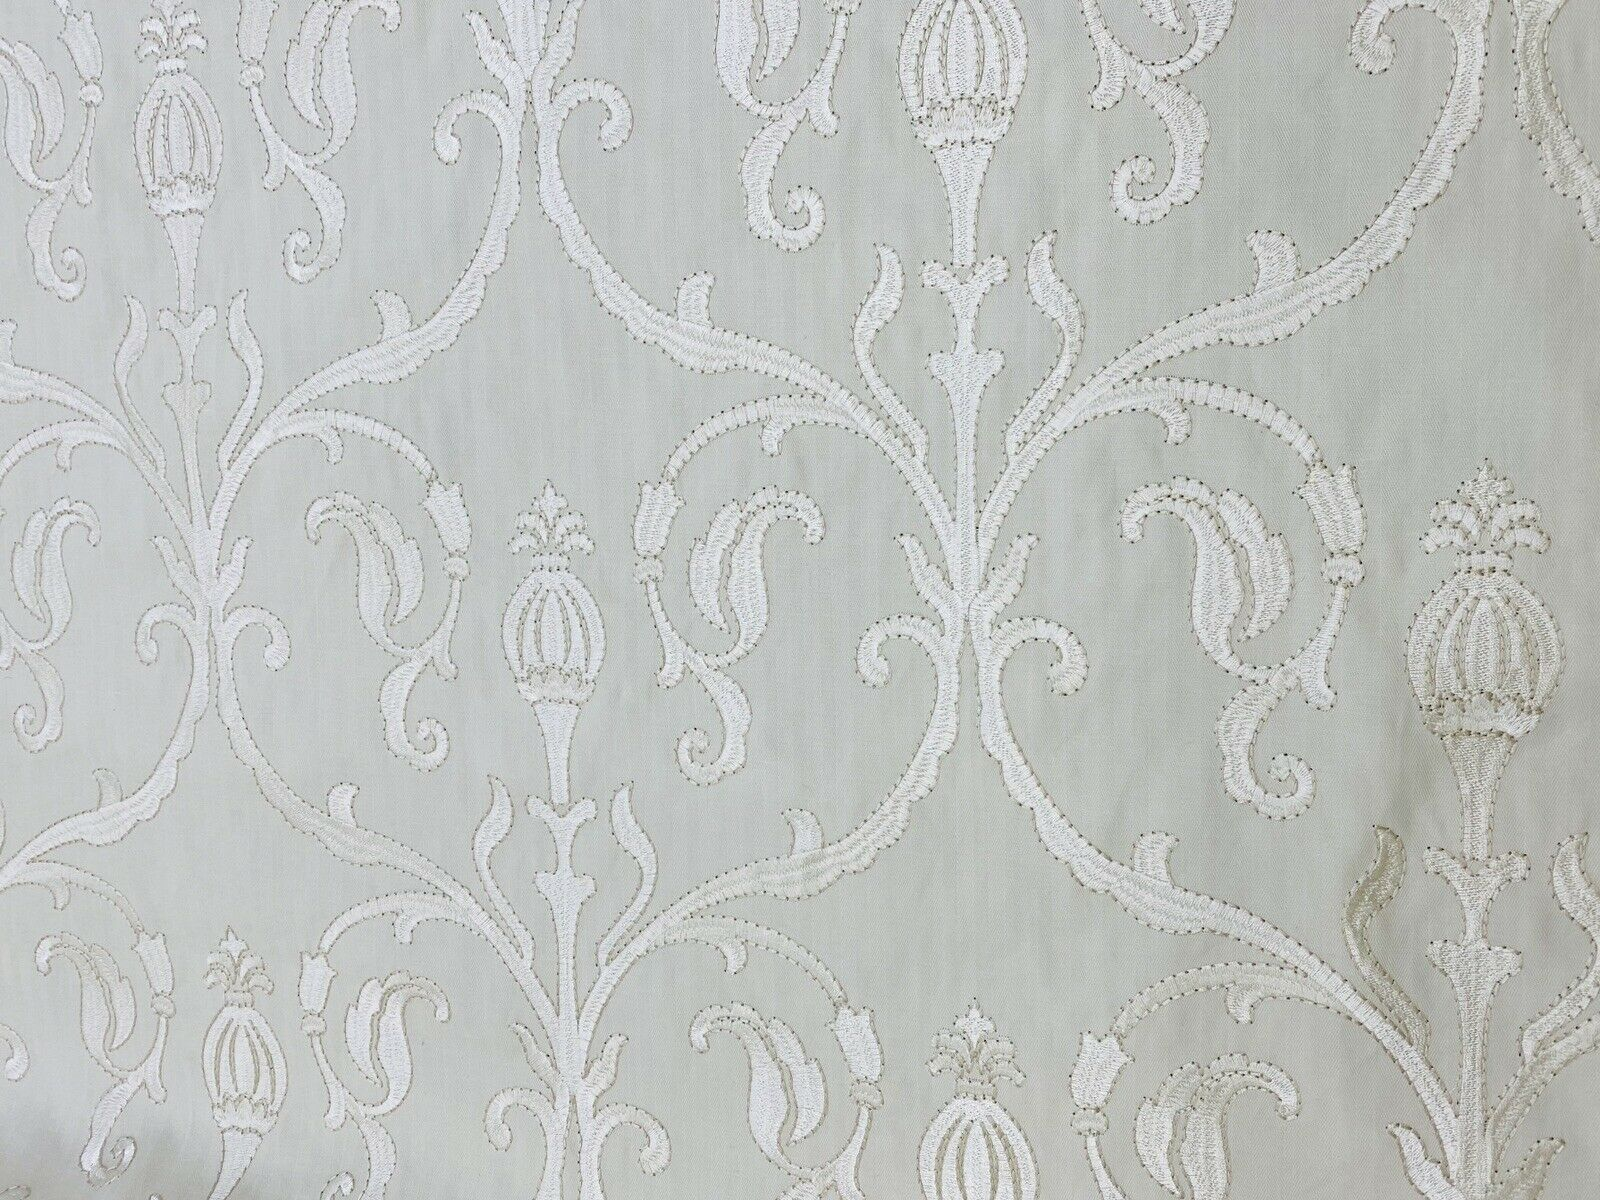 NEW! Princess Eleanor Novelty 100% Cotton Fabric Floral Damask Embroidery- White On White